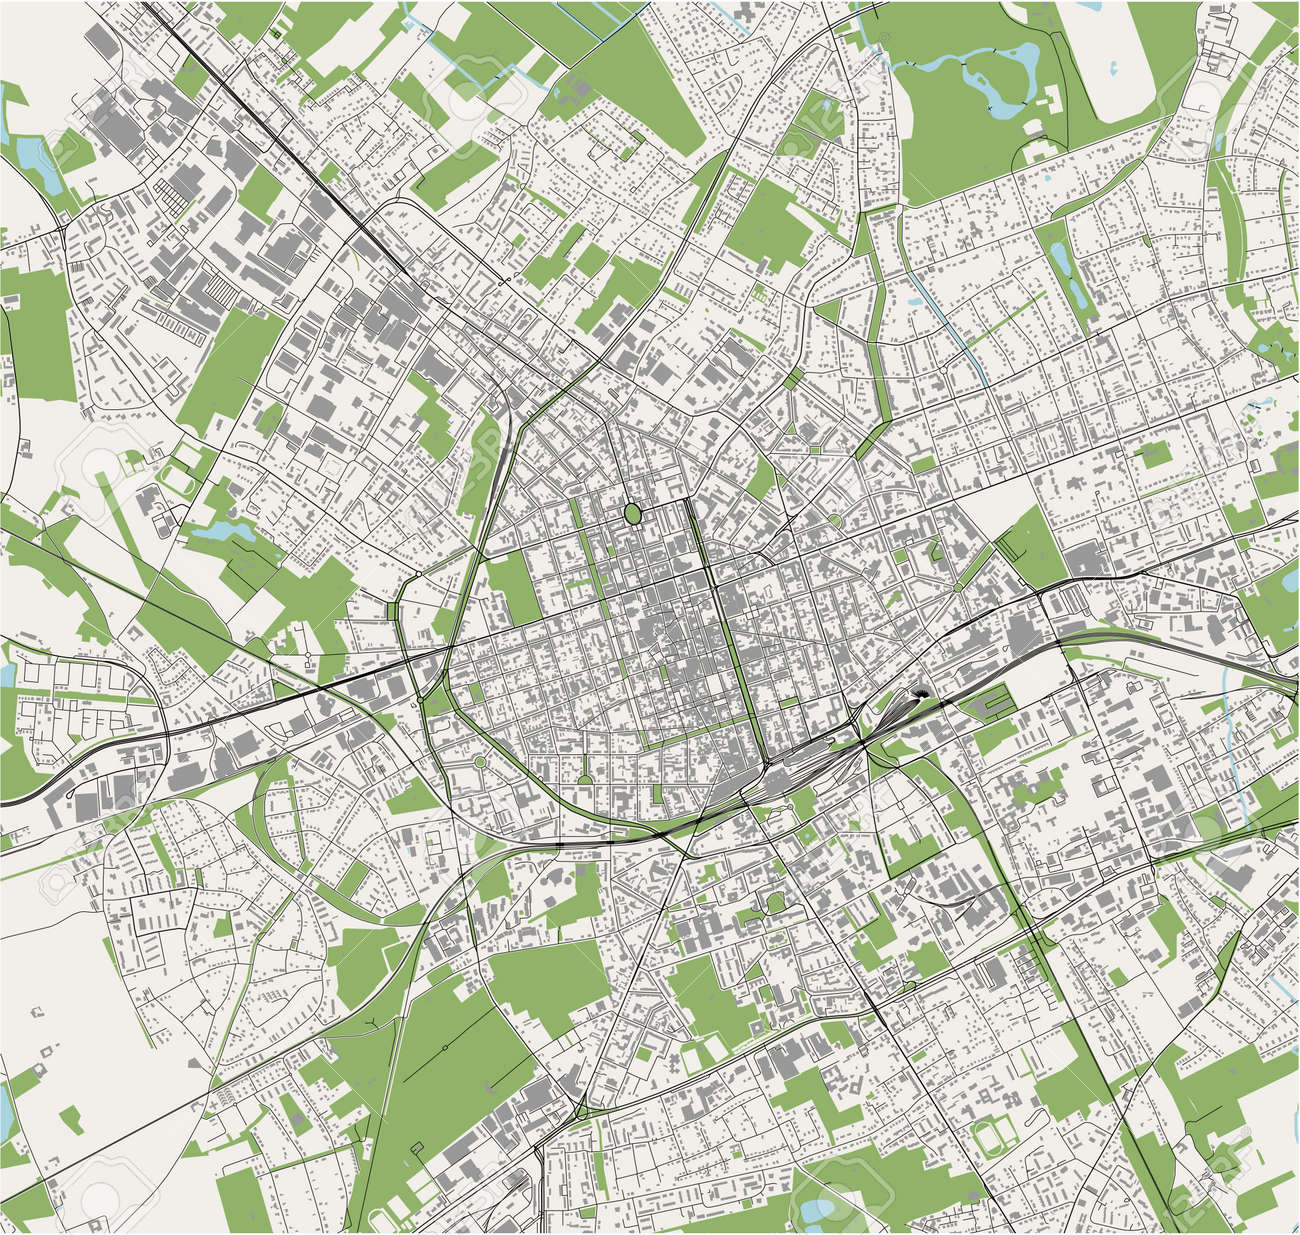 map of the city of Krefeld, Germany - 172162528